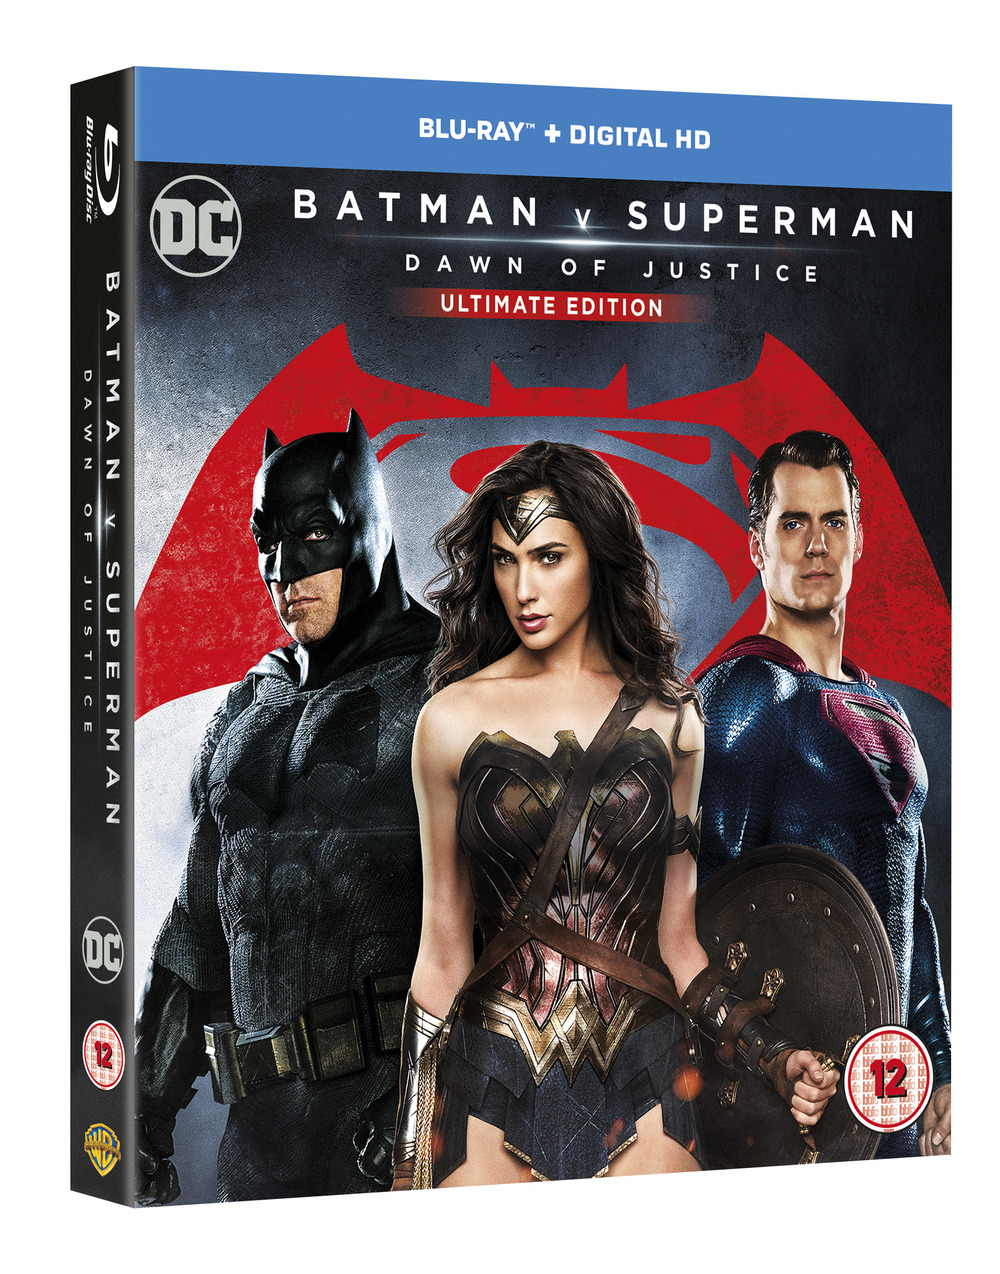 batman v superman dawn of justice will be available on ultra hd blu ray blu ray 3d blu ray and dvd the ultra hd blu ray features an ultra hd blu ray